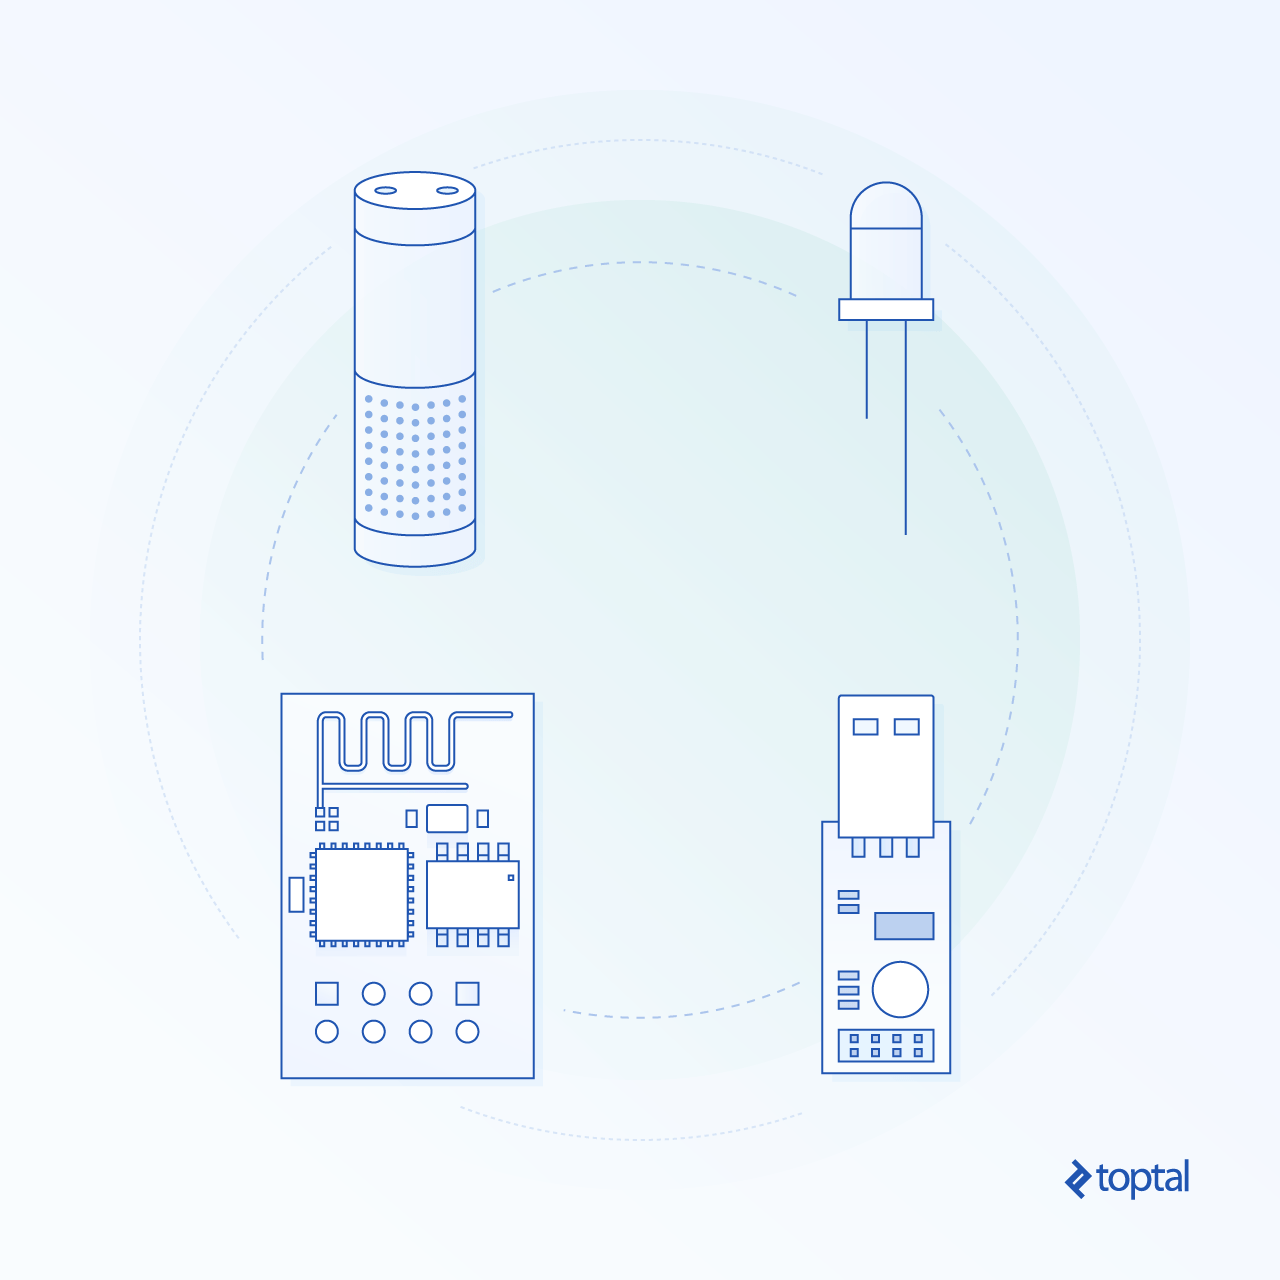 hight resolution of abstract graphic representation of pieces of hardware including an alexa tower and an arduino board